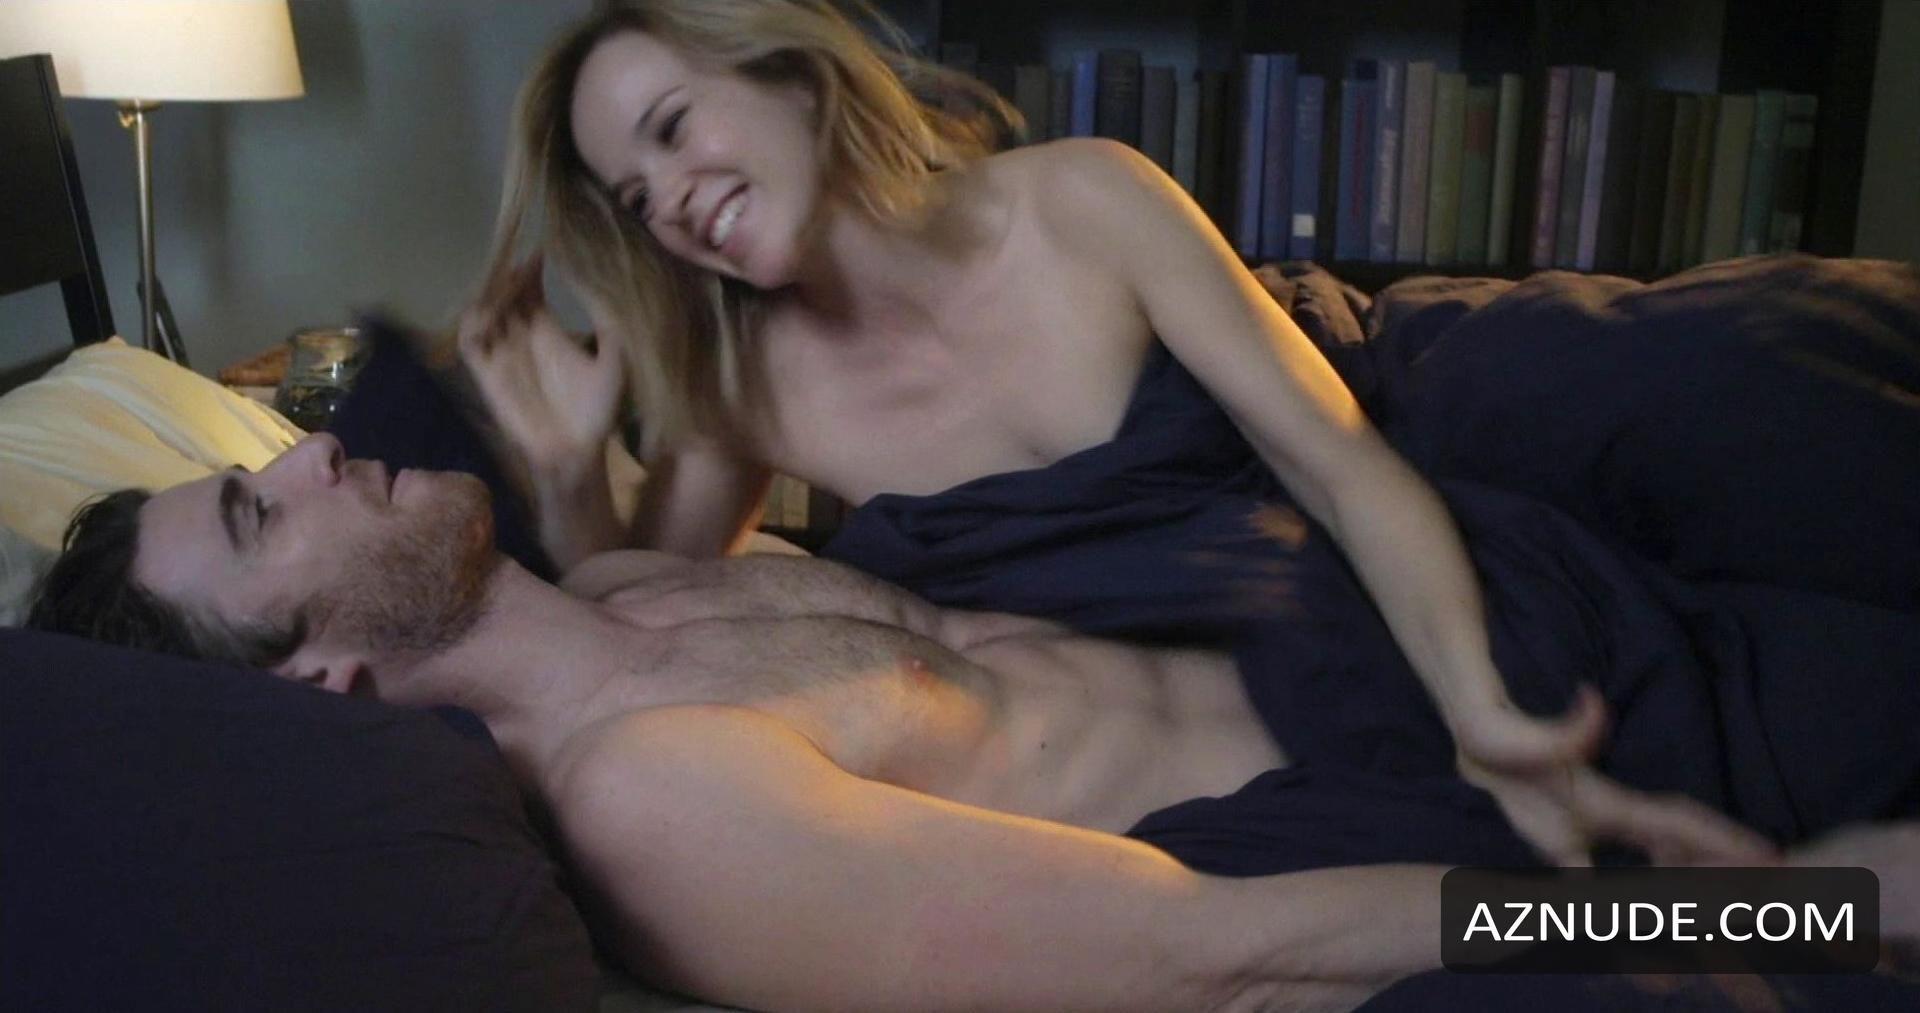 Eating My Friends Pussy